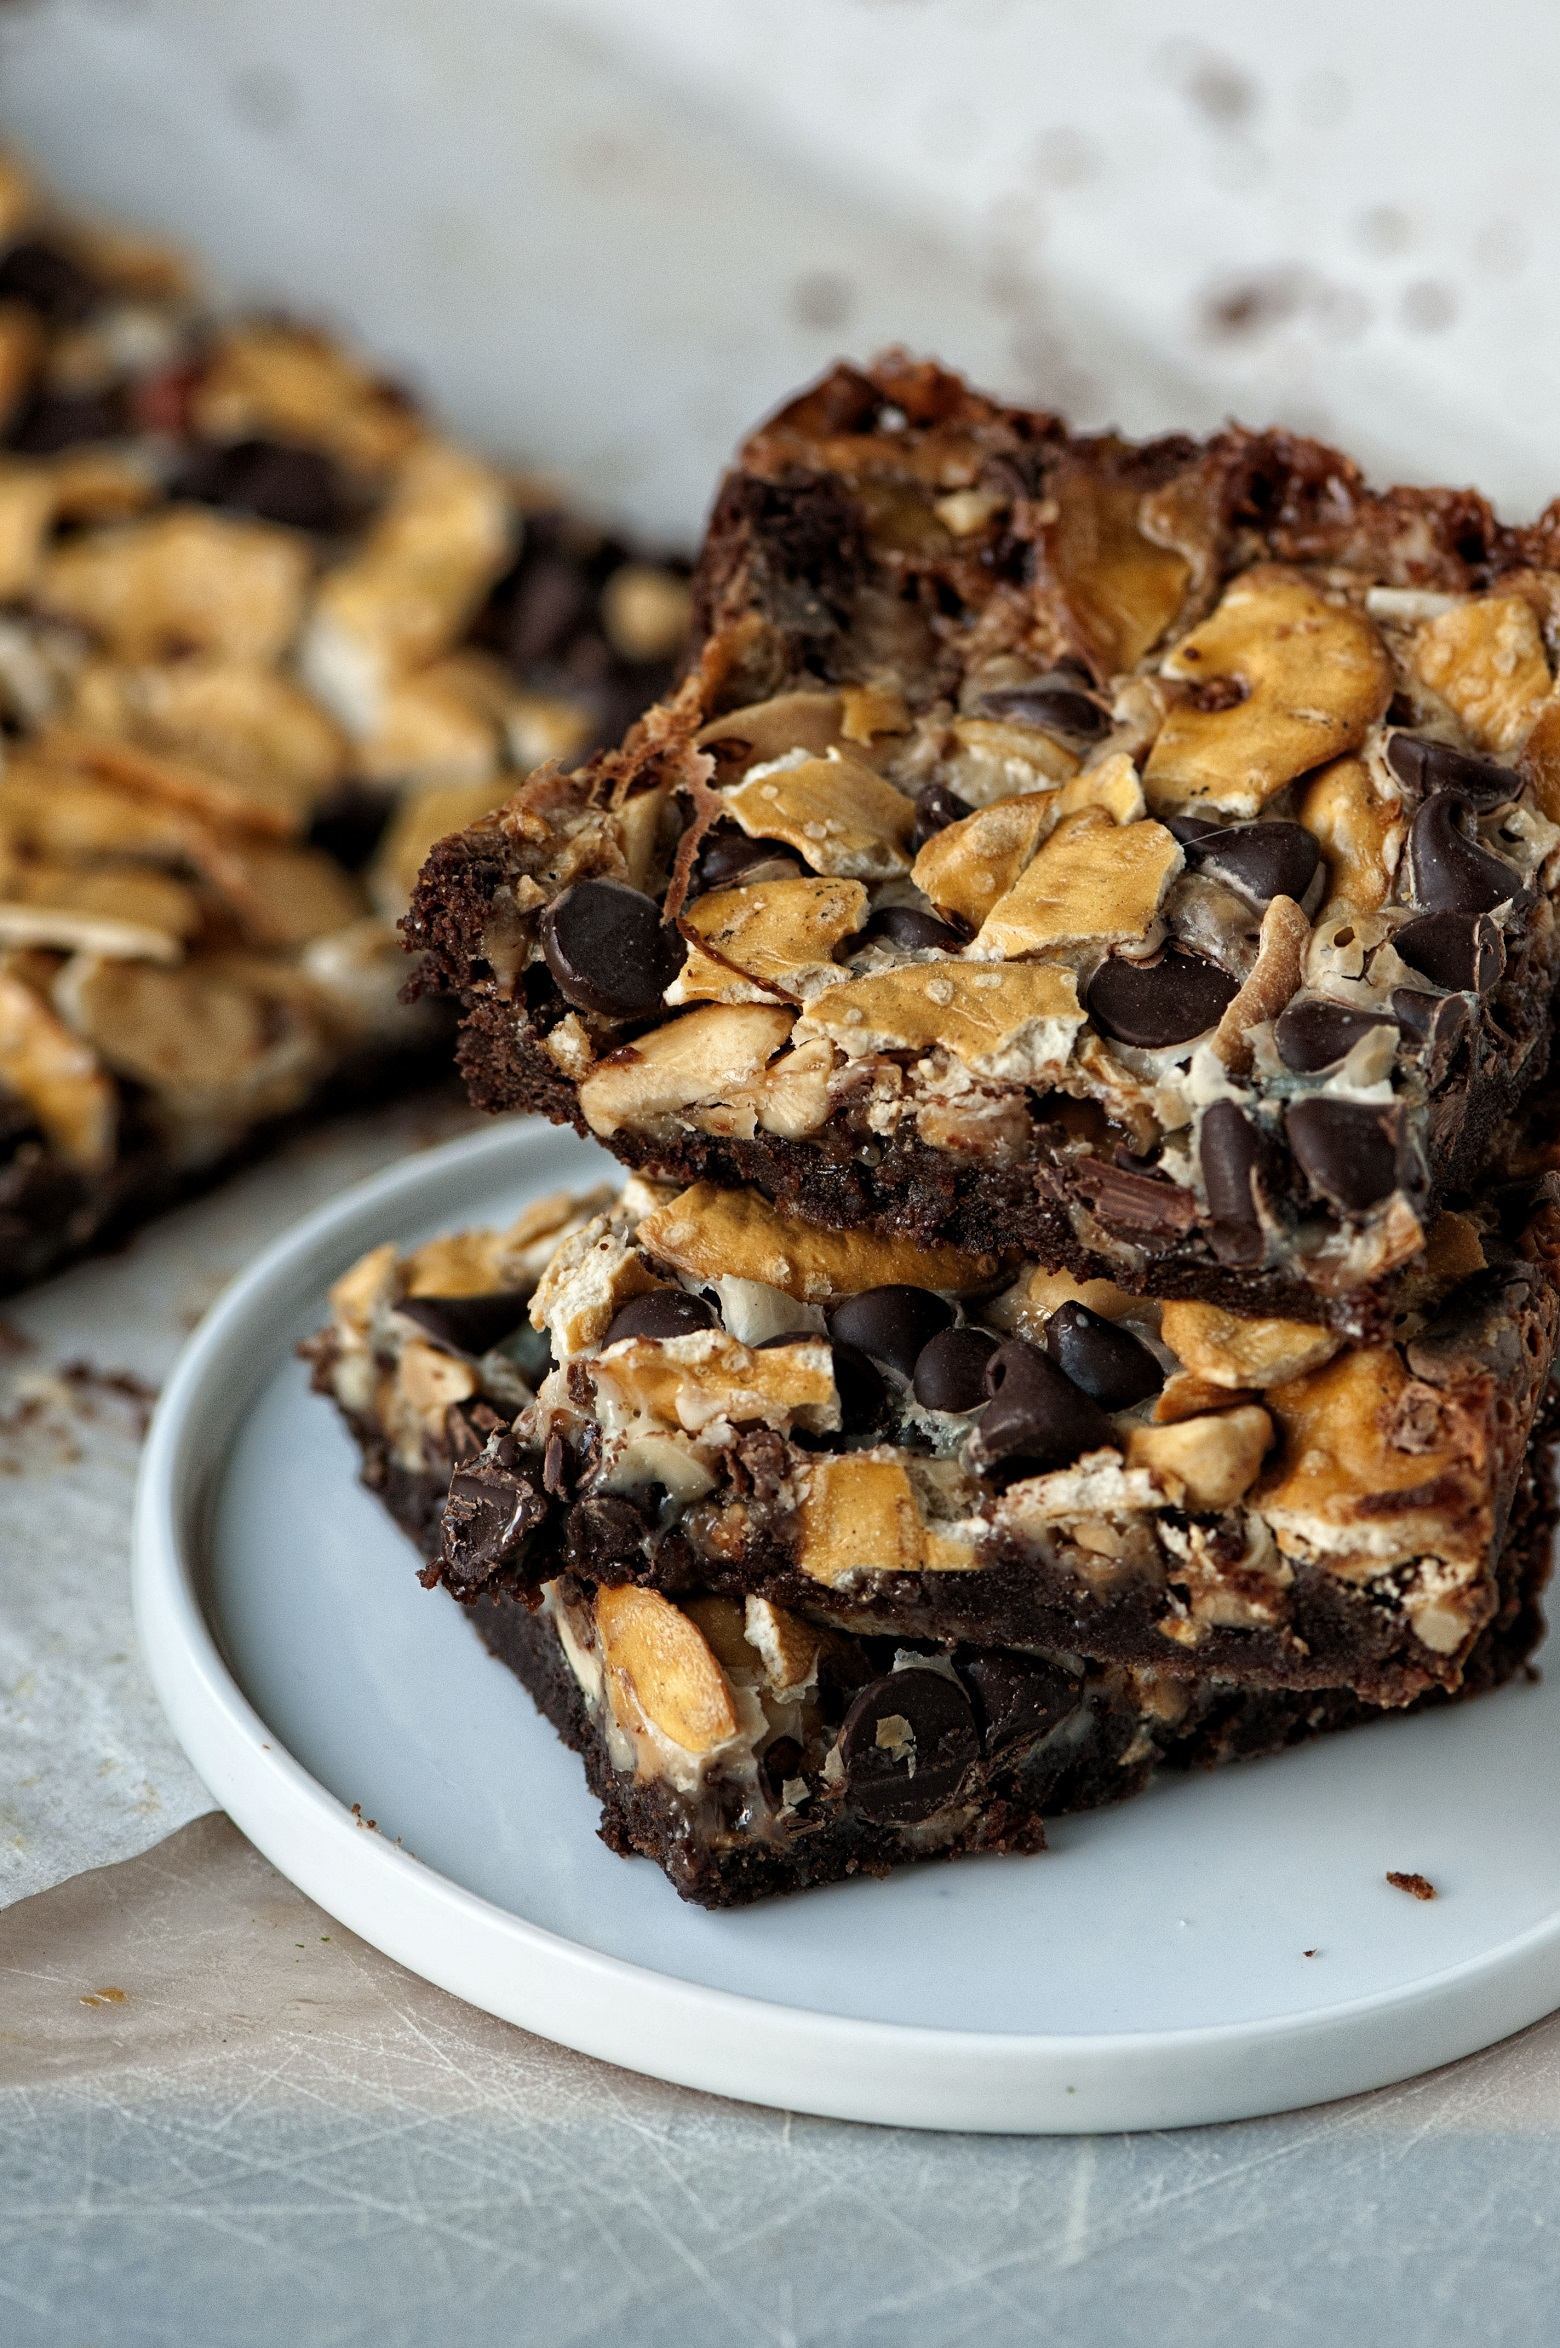 Three Cowboy 7 Layer Cookie Bars stacked up on a plate.